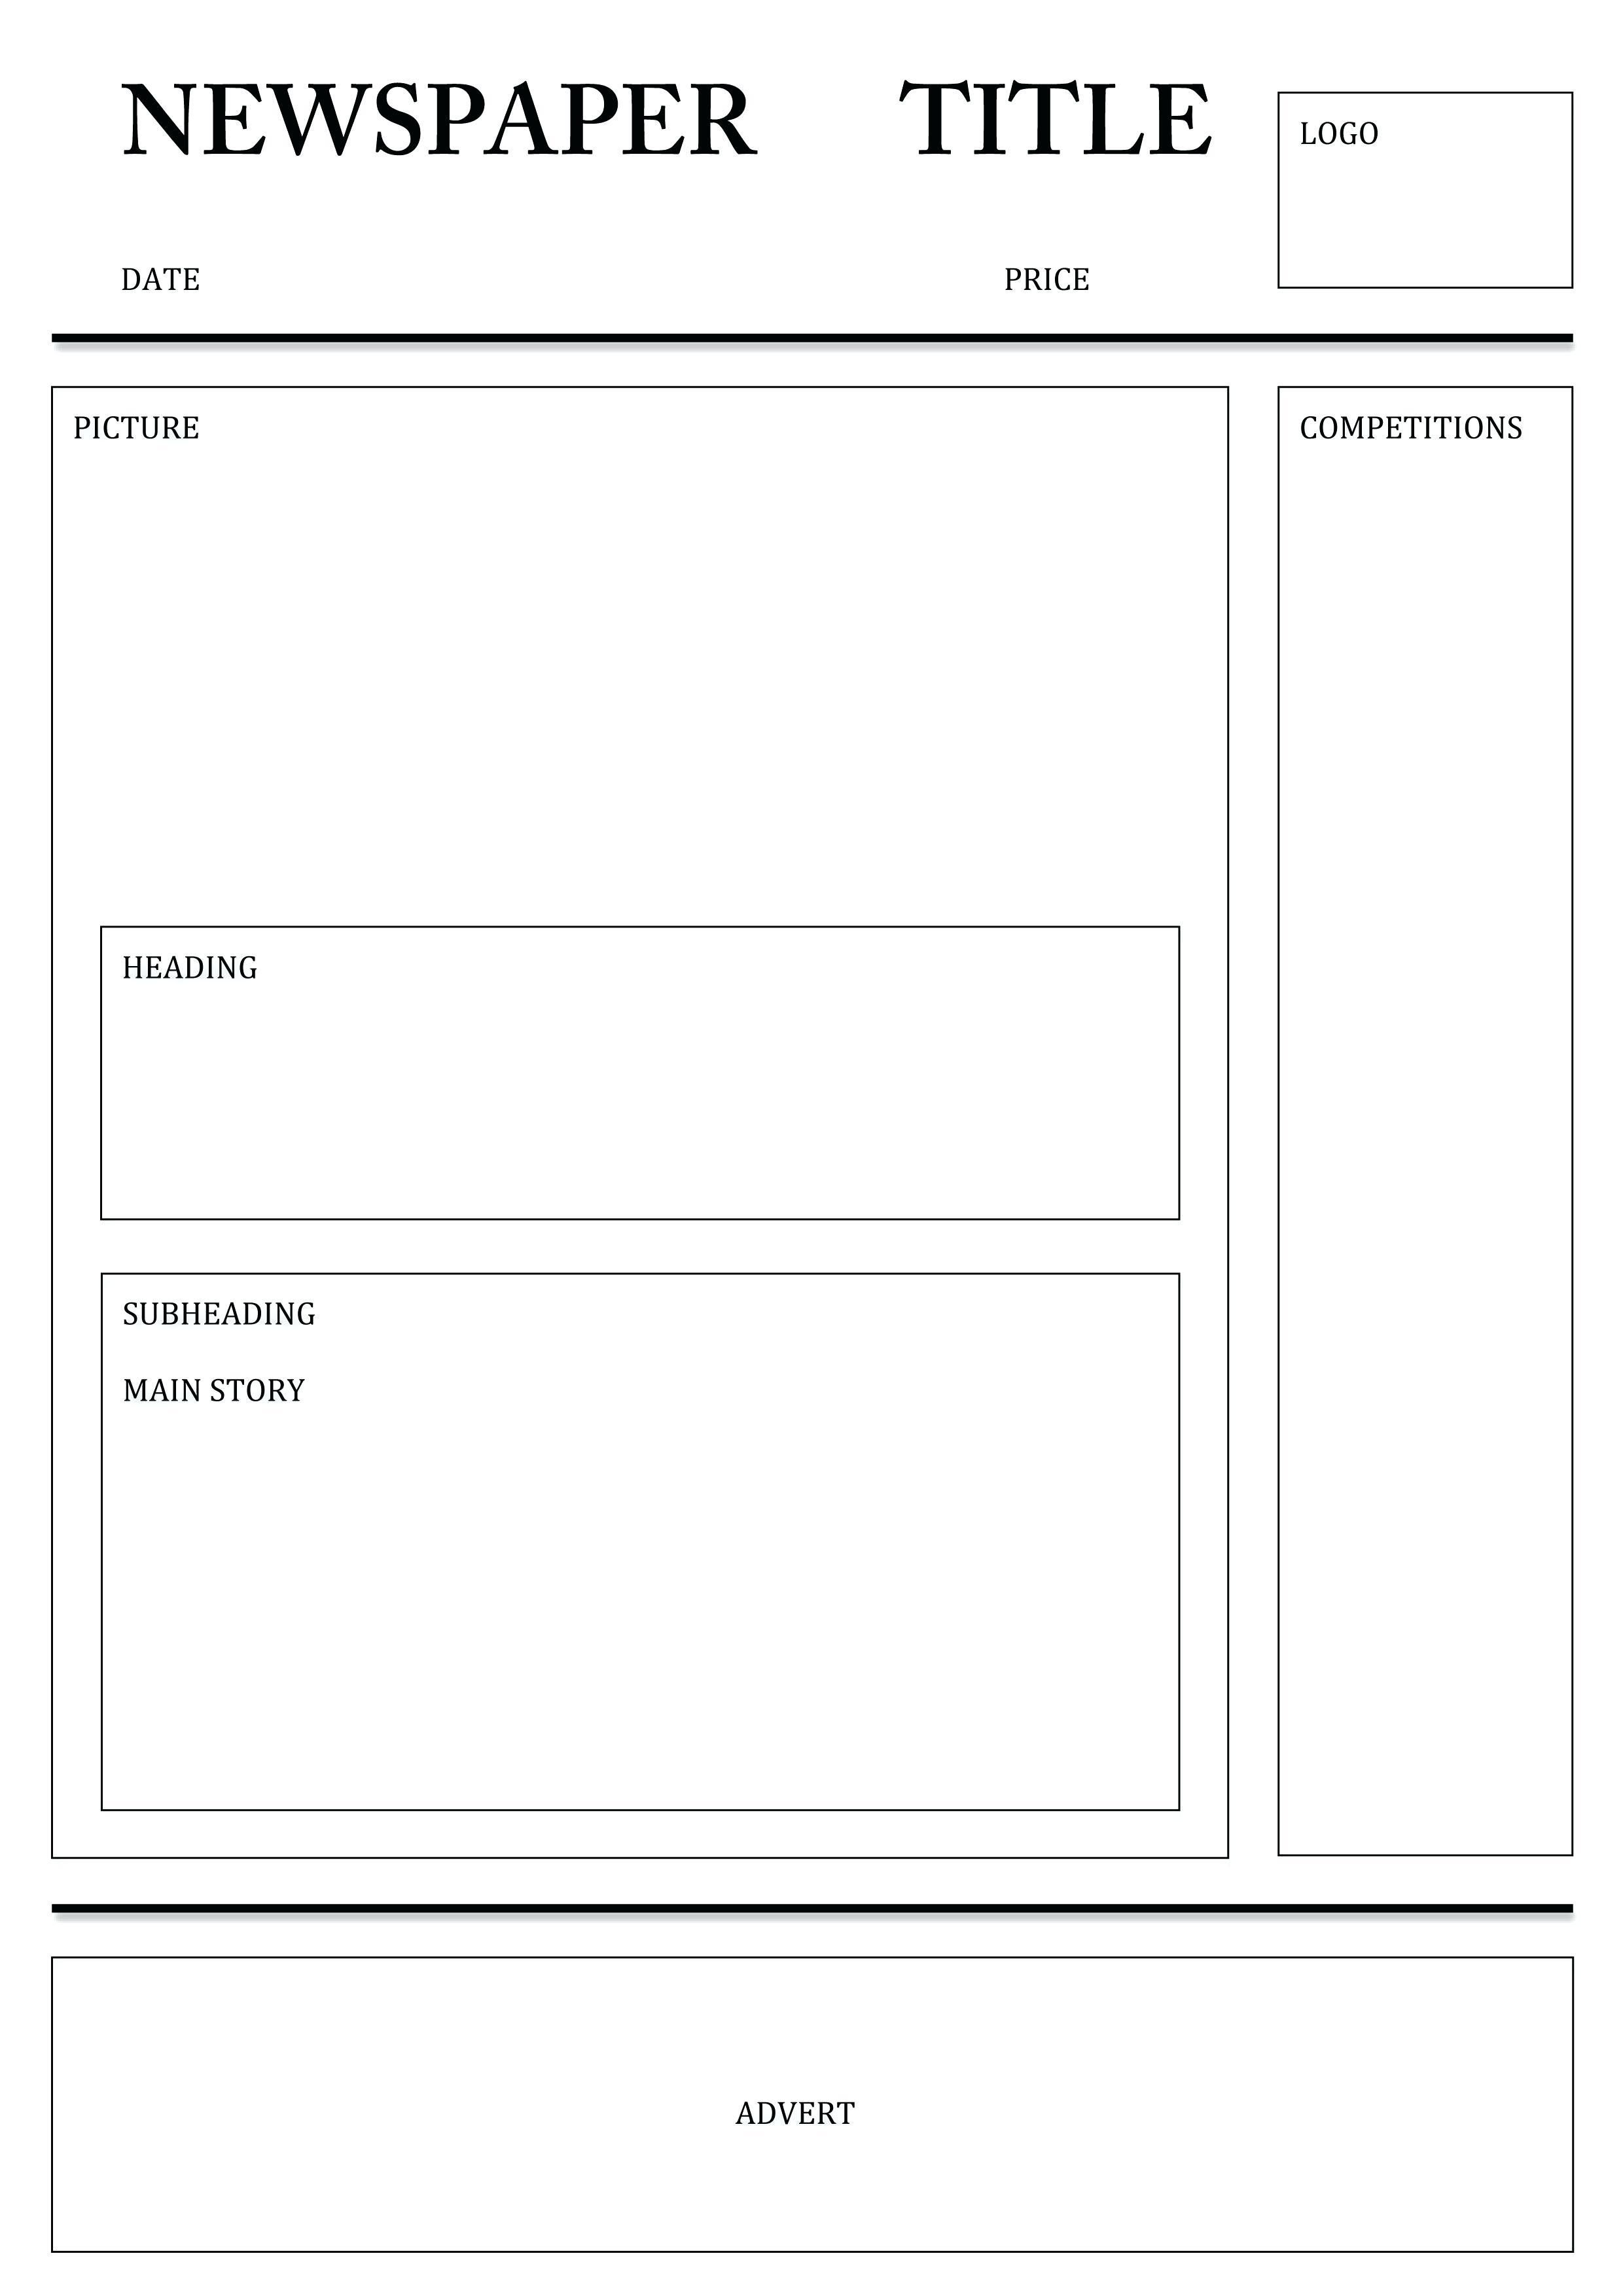 Newspaper Template For Word Excel